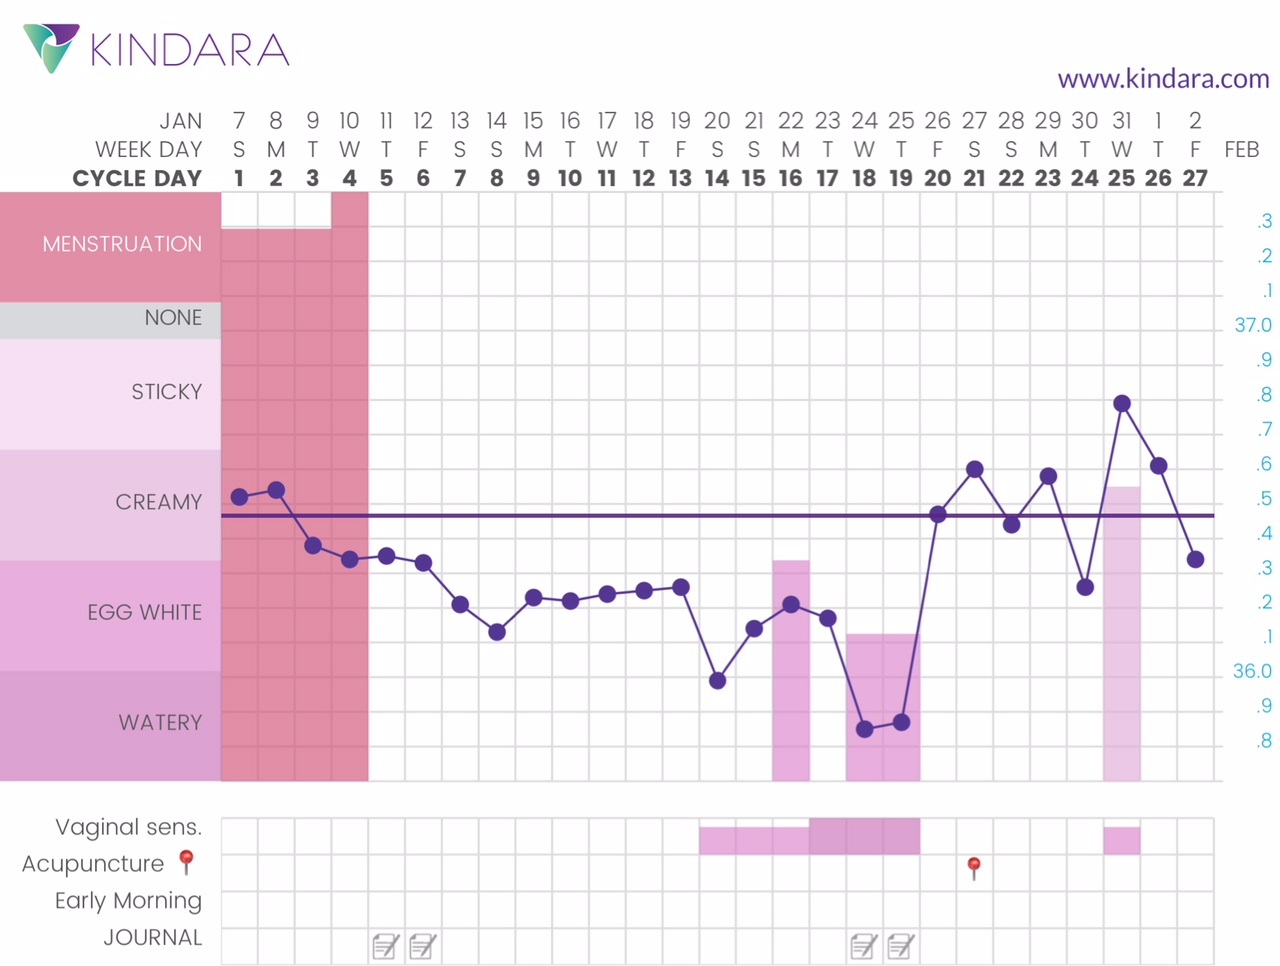 An example of a monthly chart via the Kindara app.